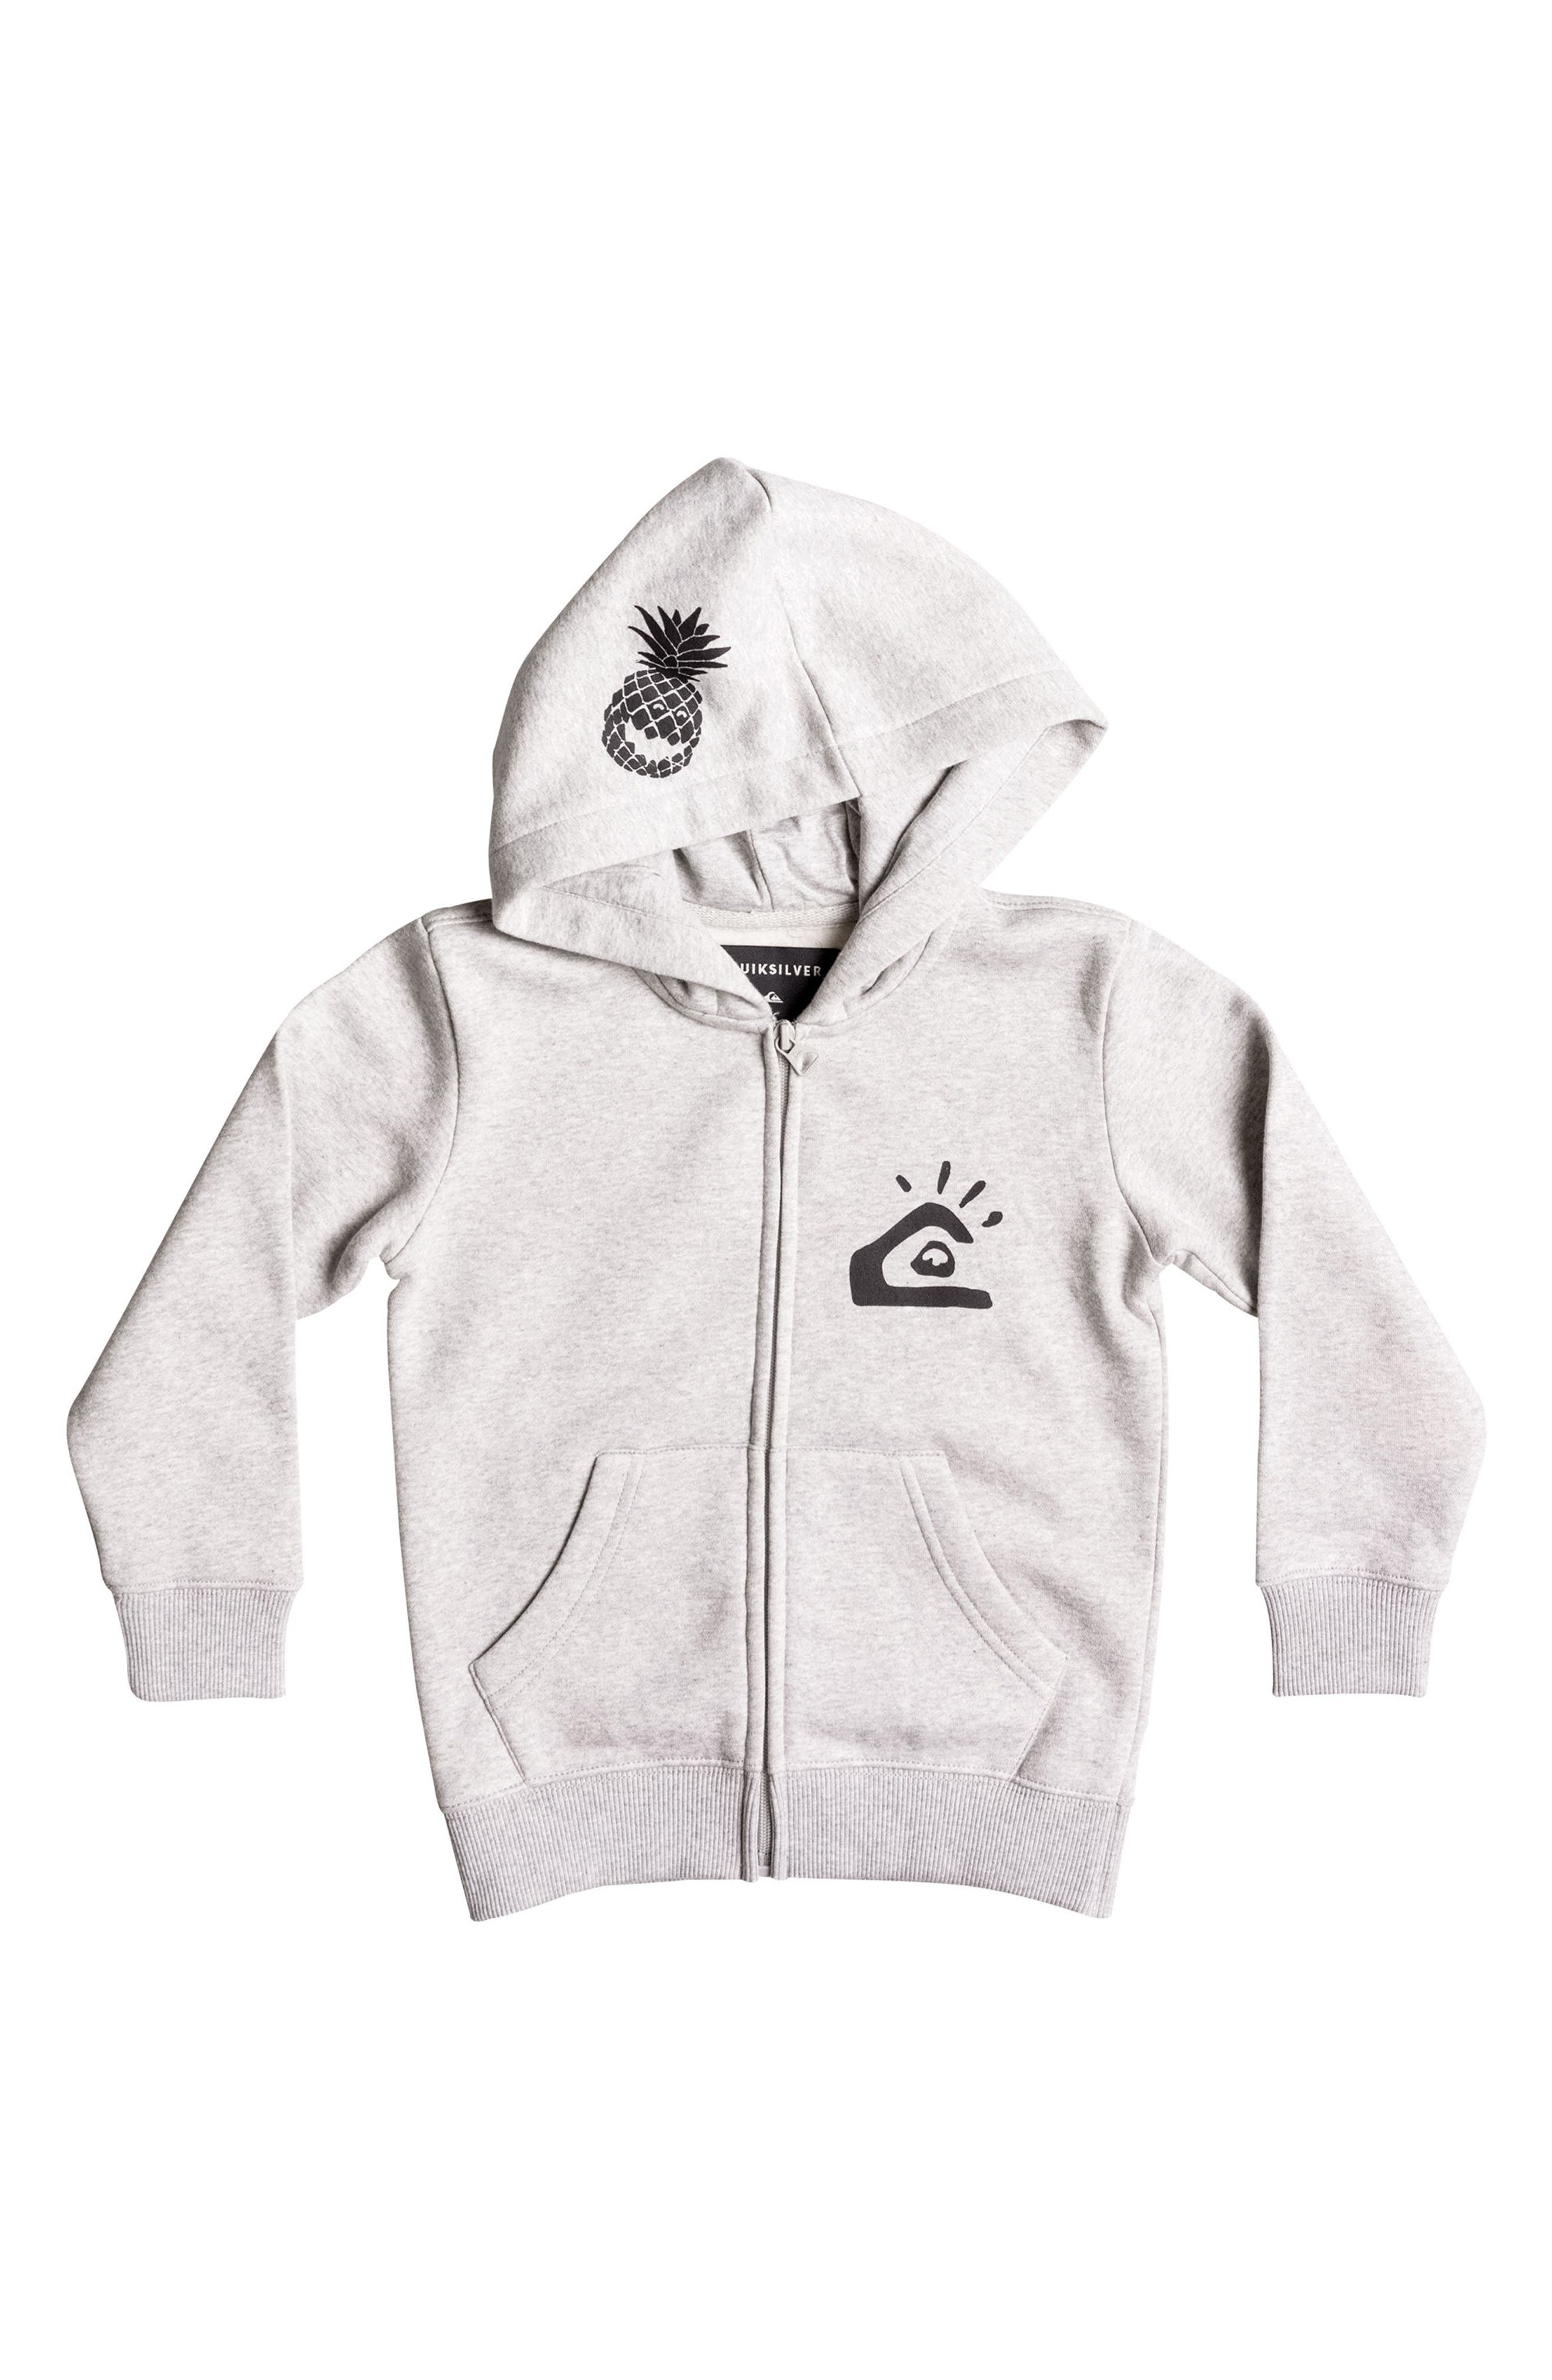 Quiksilver Lemon Smile Graphic Zip Hoodie (Toddler Boys & Little Boys)